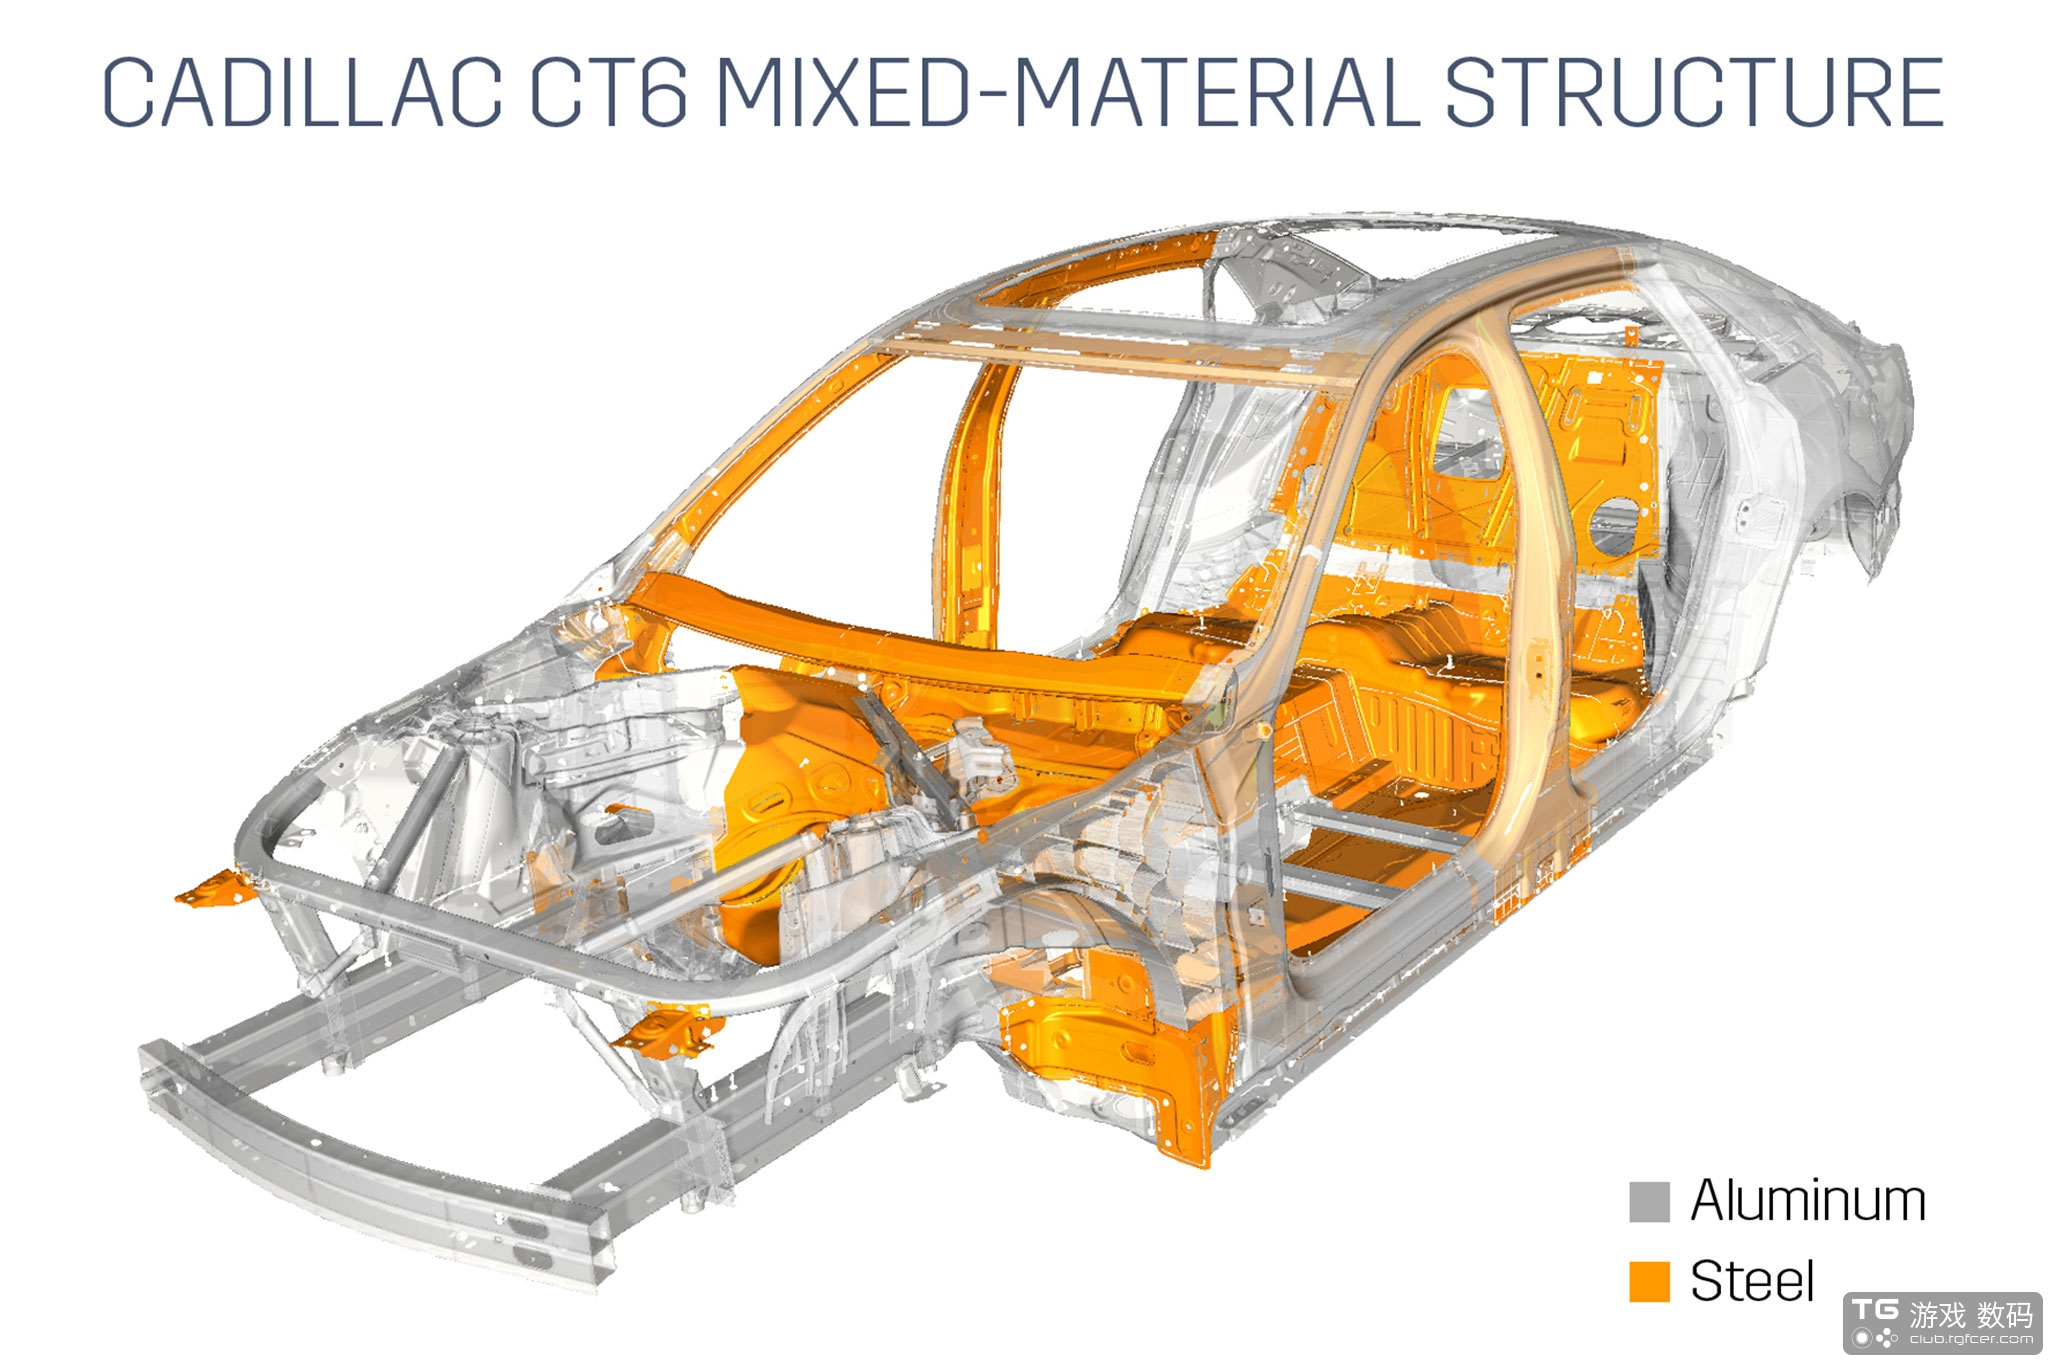 cadillac-ct6-aluminum-structure-diagram.jpg